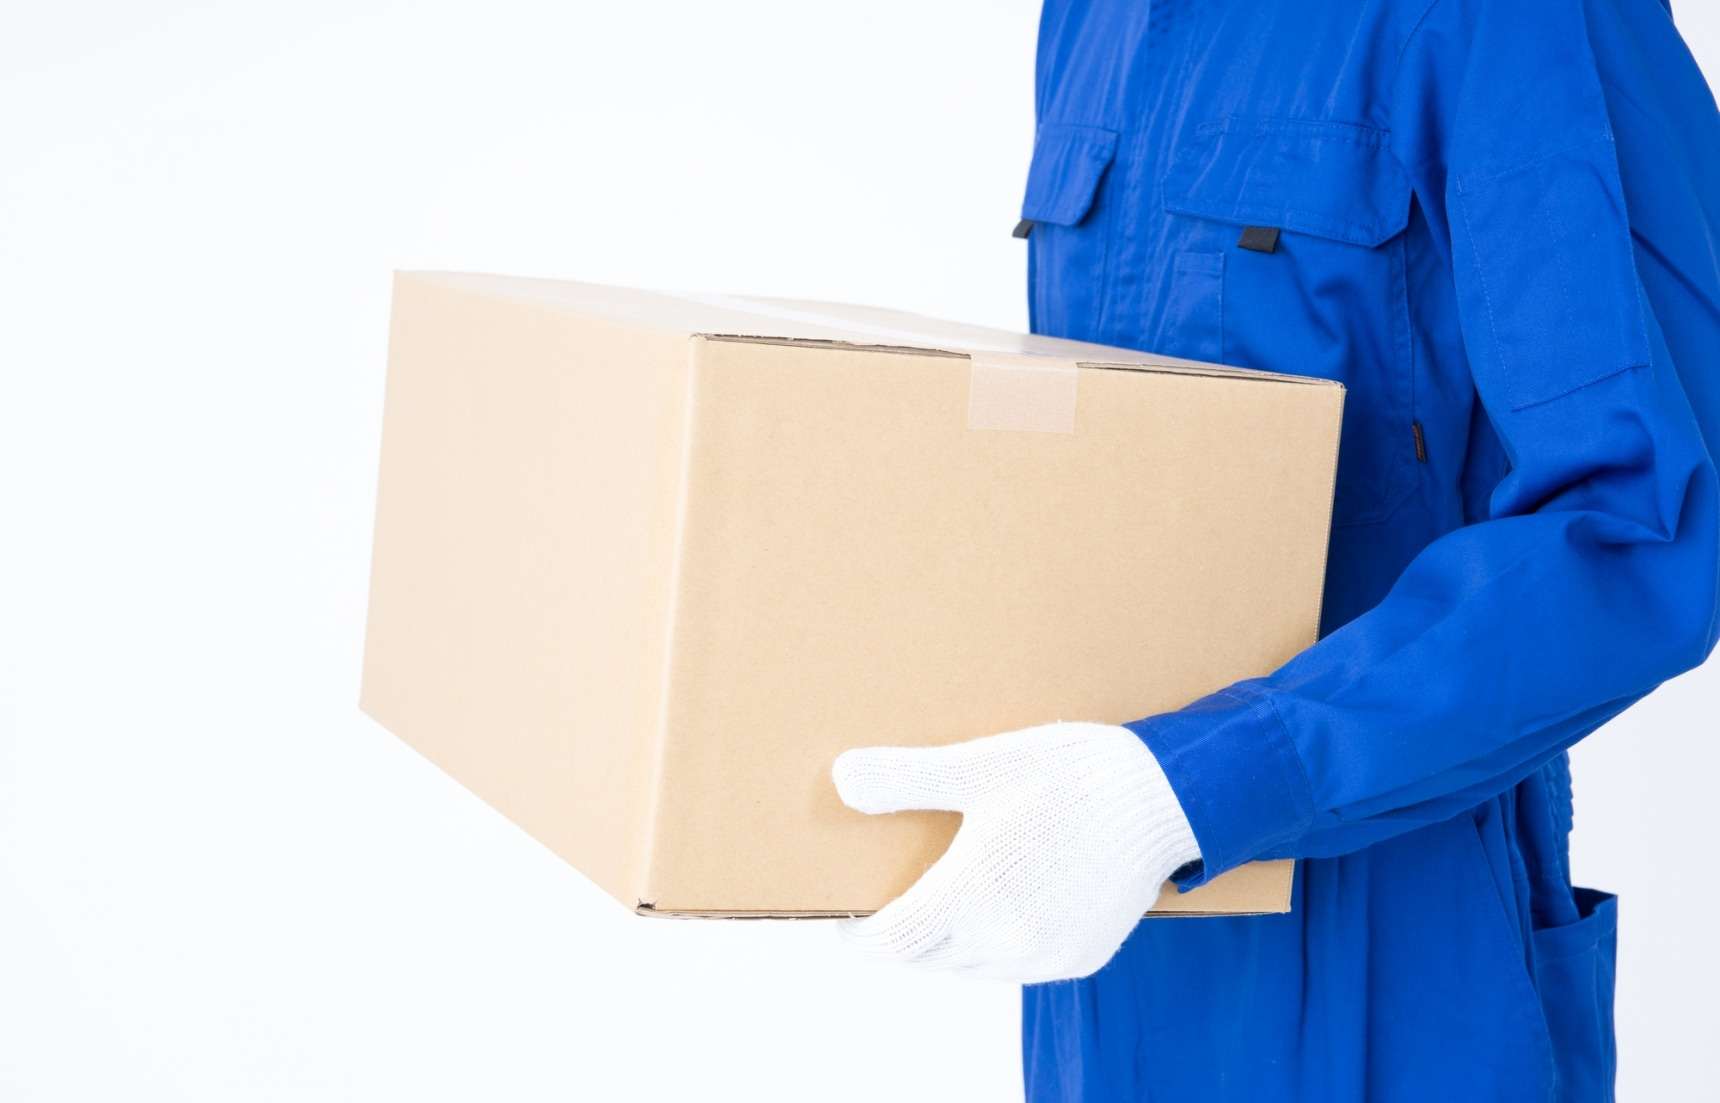 6 Shipping Companies That'll Make Life Easier